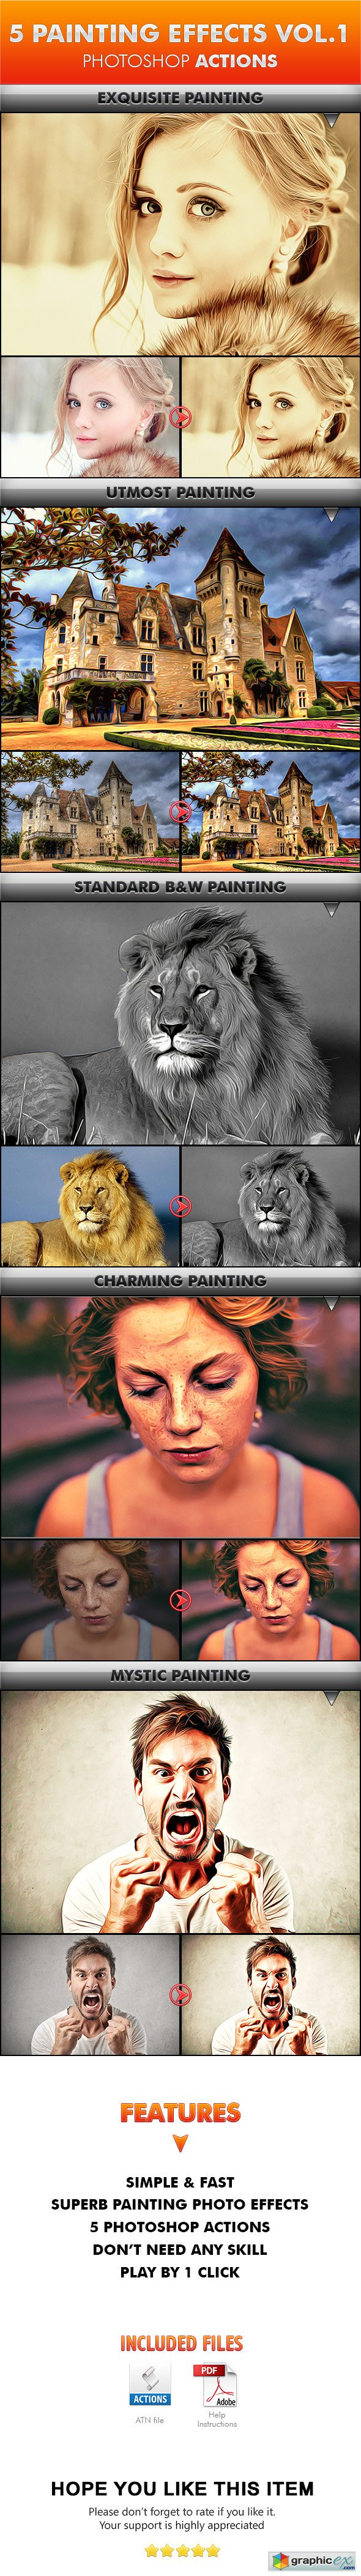 5 Painting Effects Vol.1 Photoshop Actions